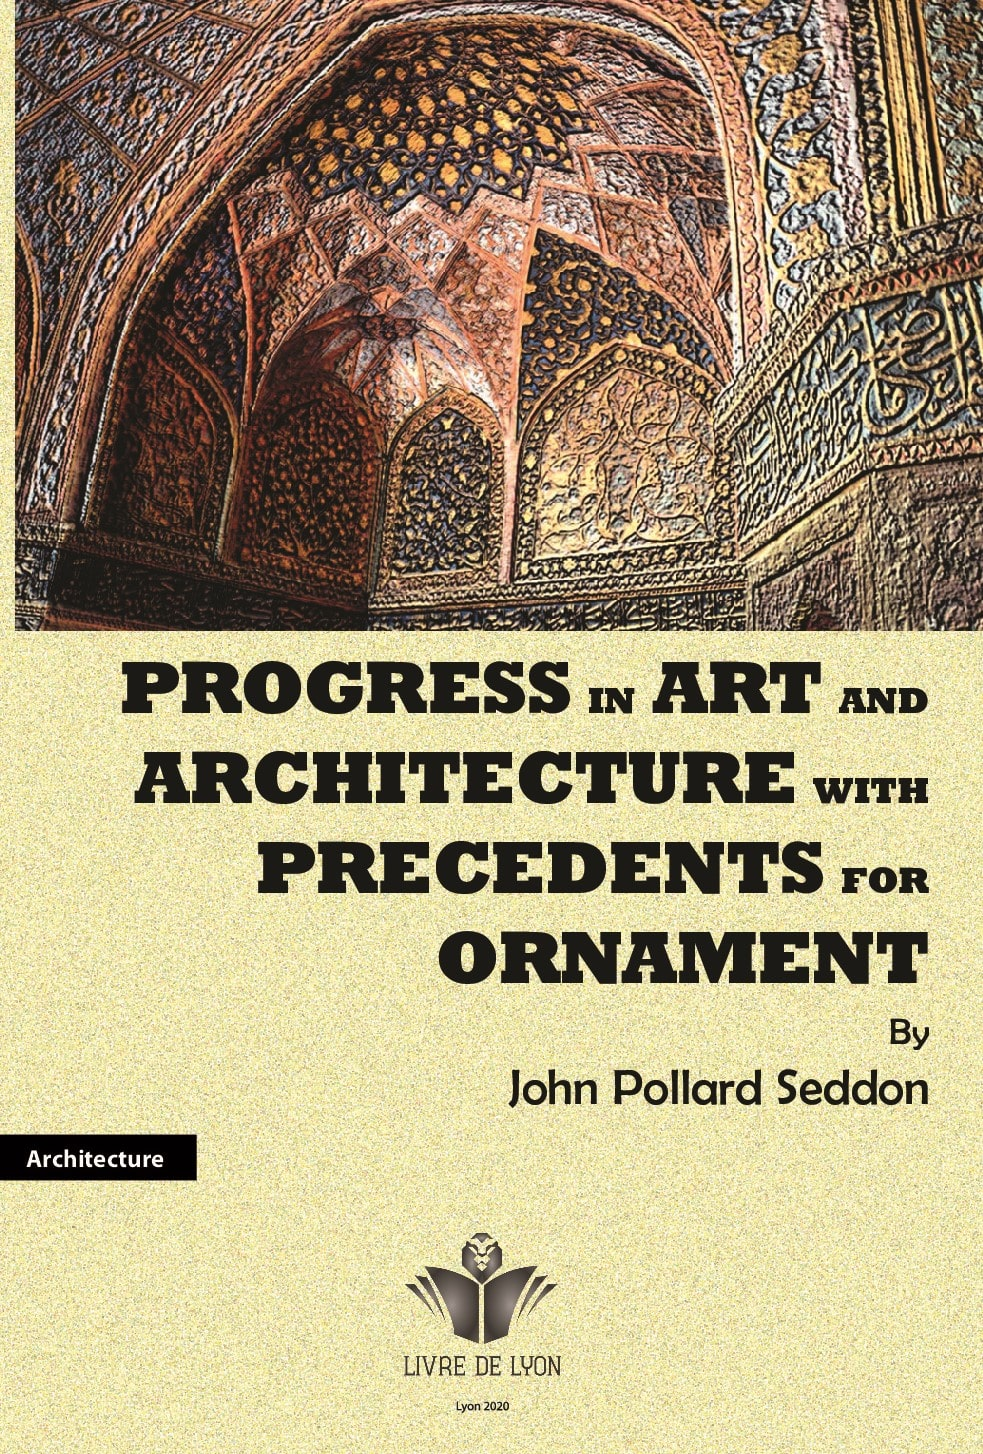 Progress in Art and Architecture, With Precedents for Ornament